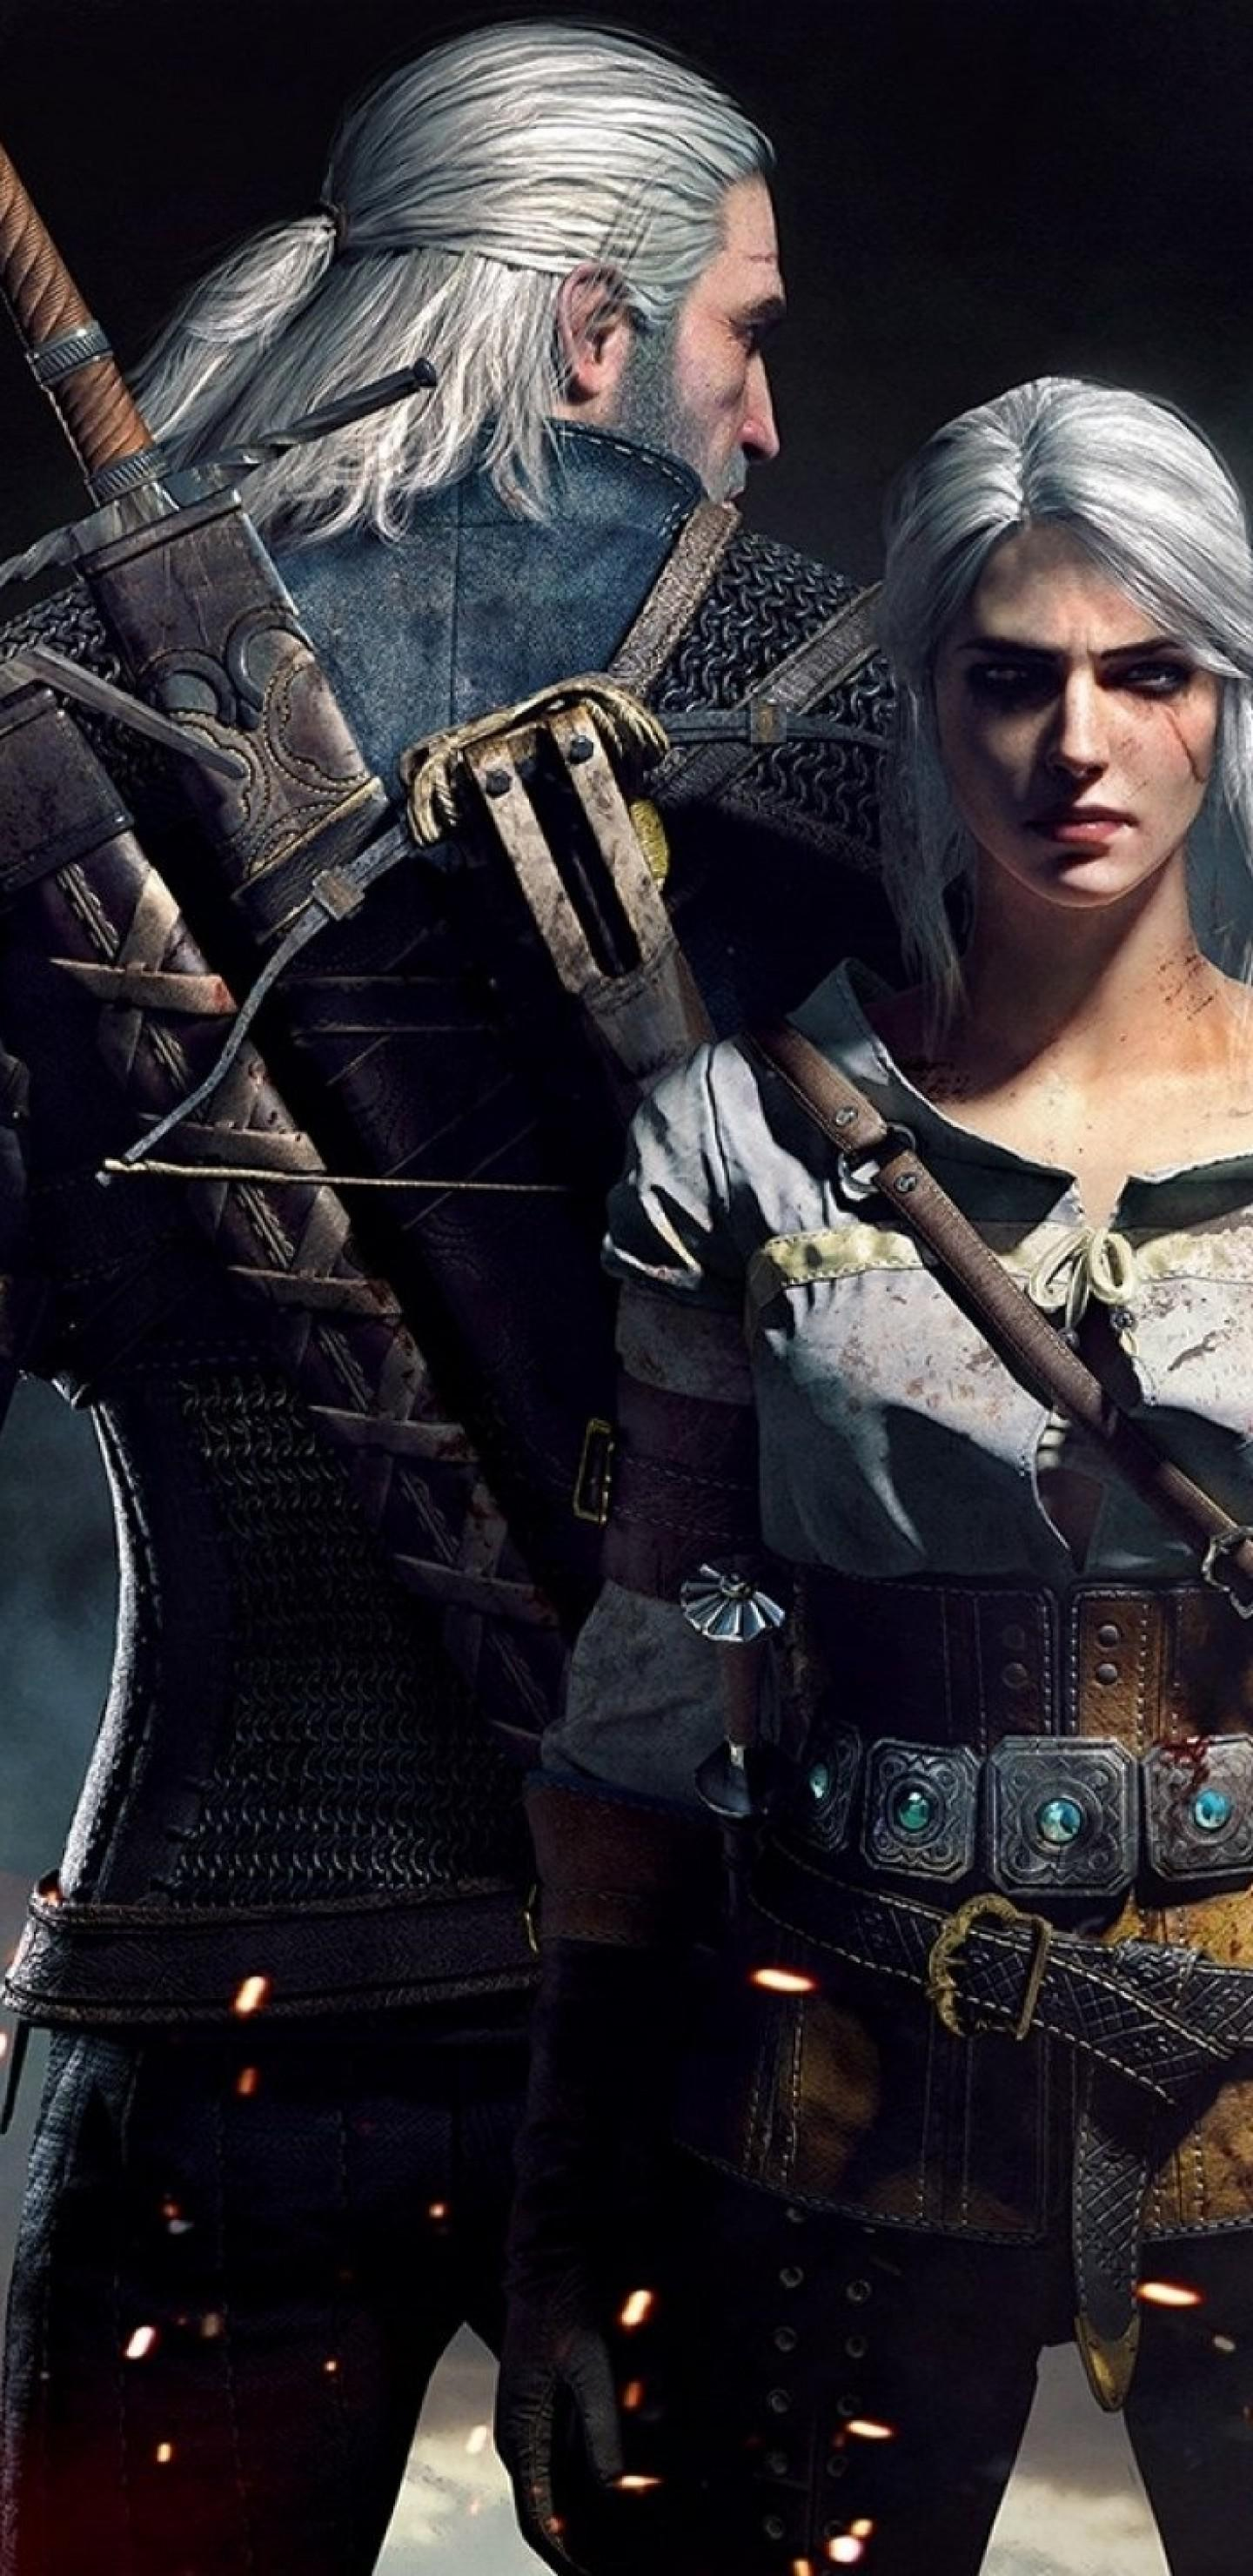 The Witcher Ciri Wallpaper Download K Wallpapers For